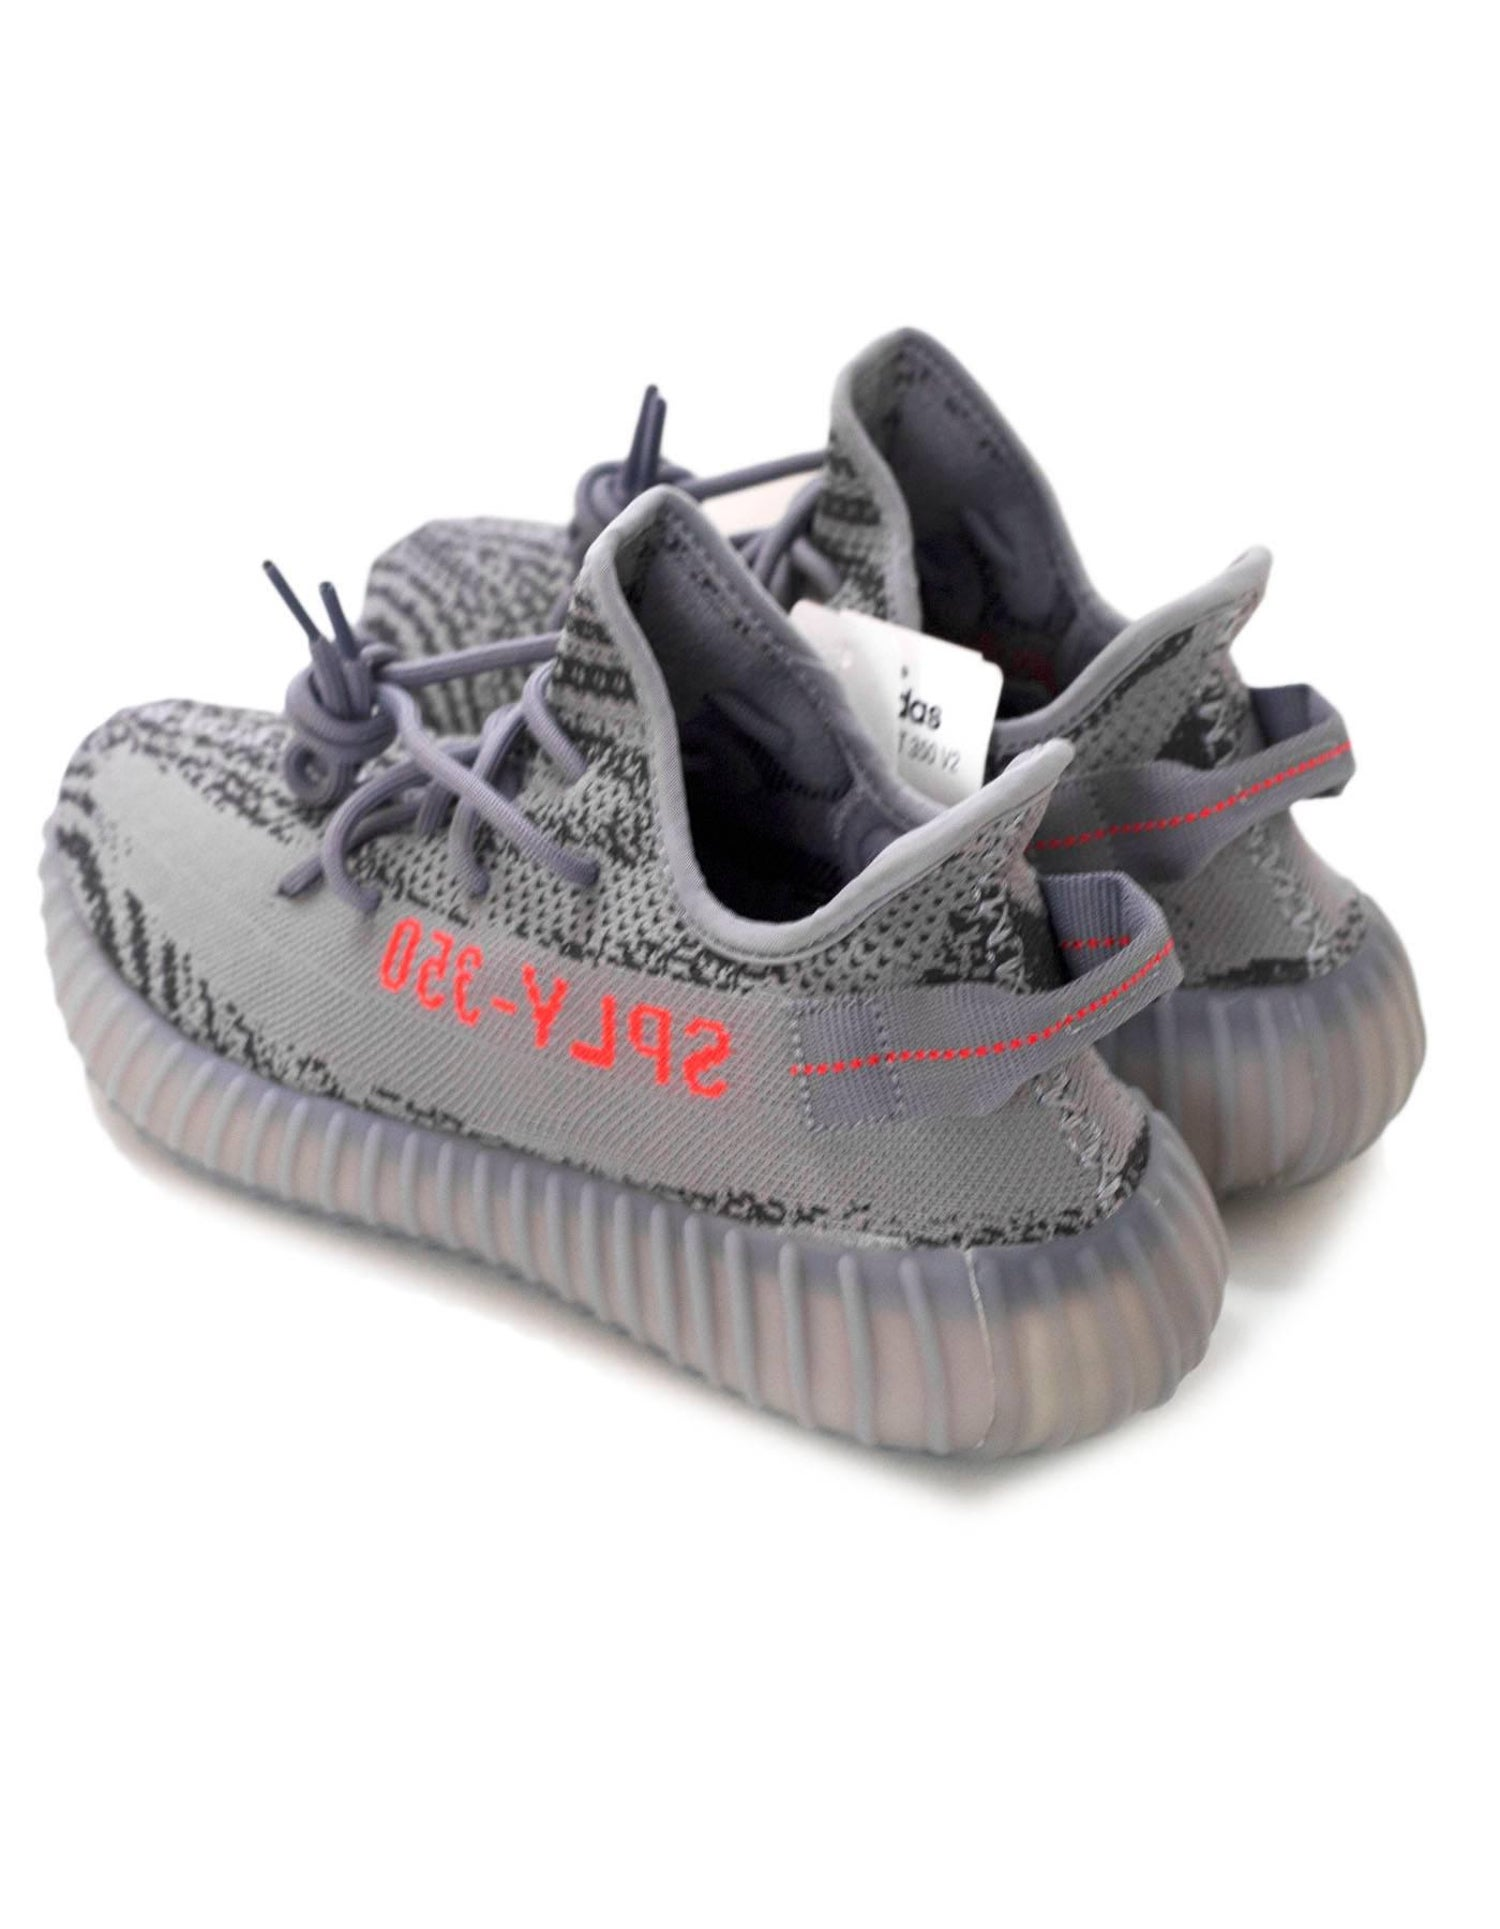 43a6d9785 Adidas x Kanye West MENS Yeezy Boost 350 V2 Beluga 2.0 Sneakers Sz 10 NIB  For Sale at 1stdibs